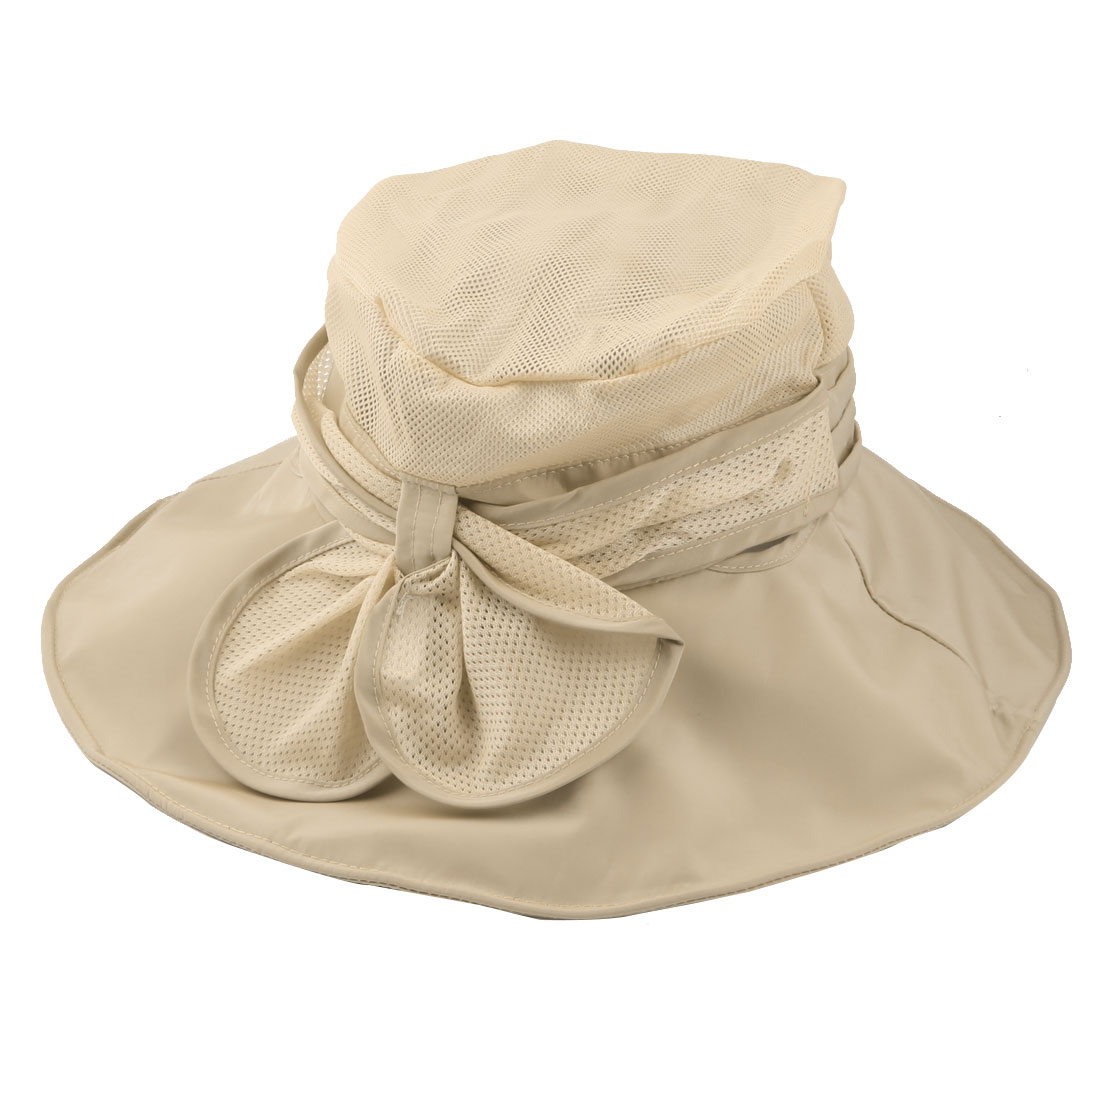 Women Summer Sea Beach Travel Polyester Foldable Floppy Sun Protector Hat Cap Beige